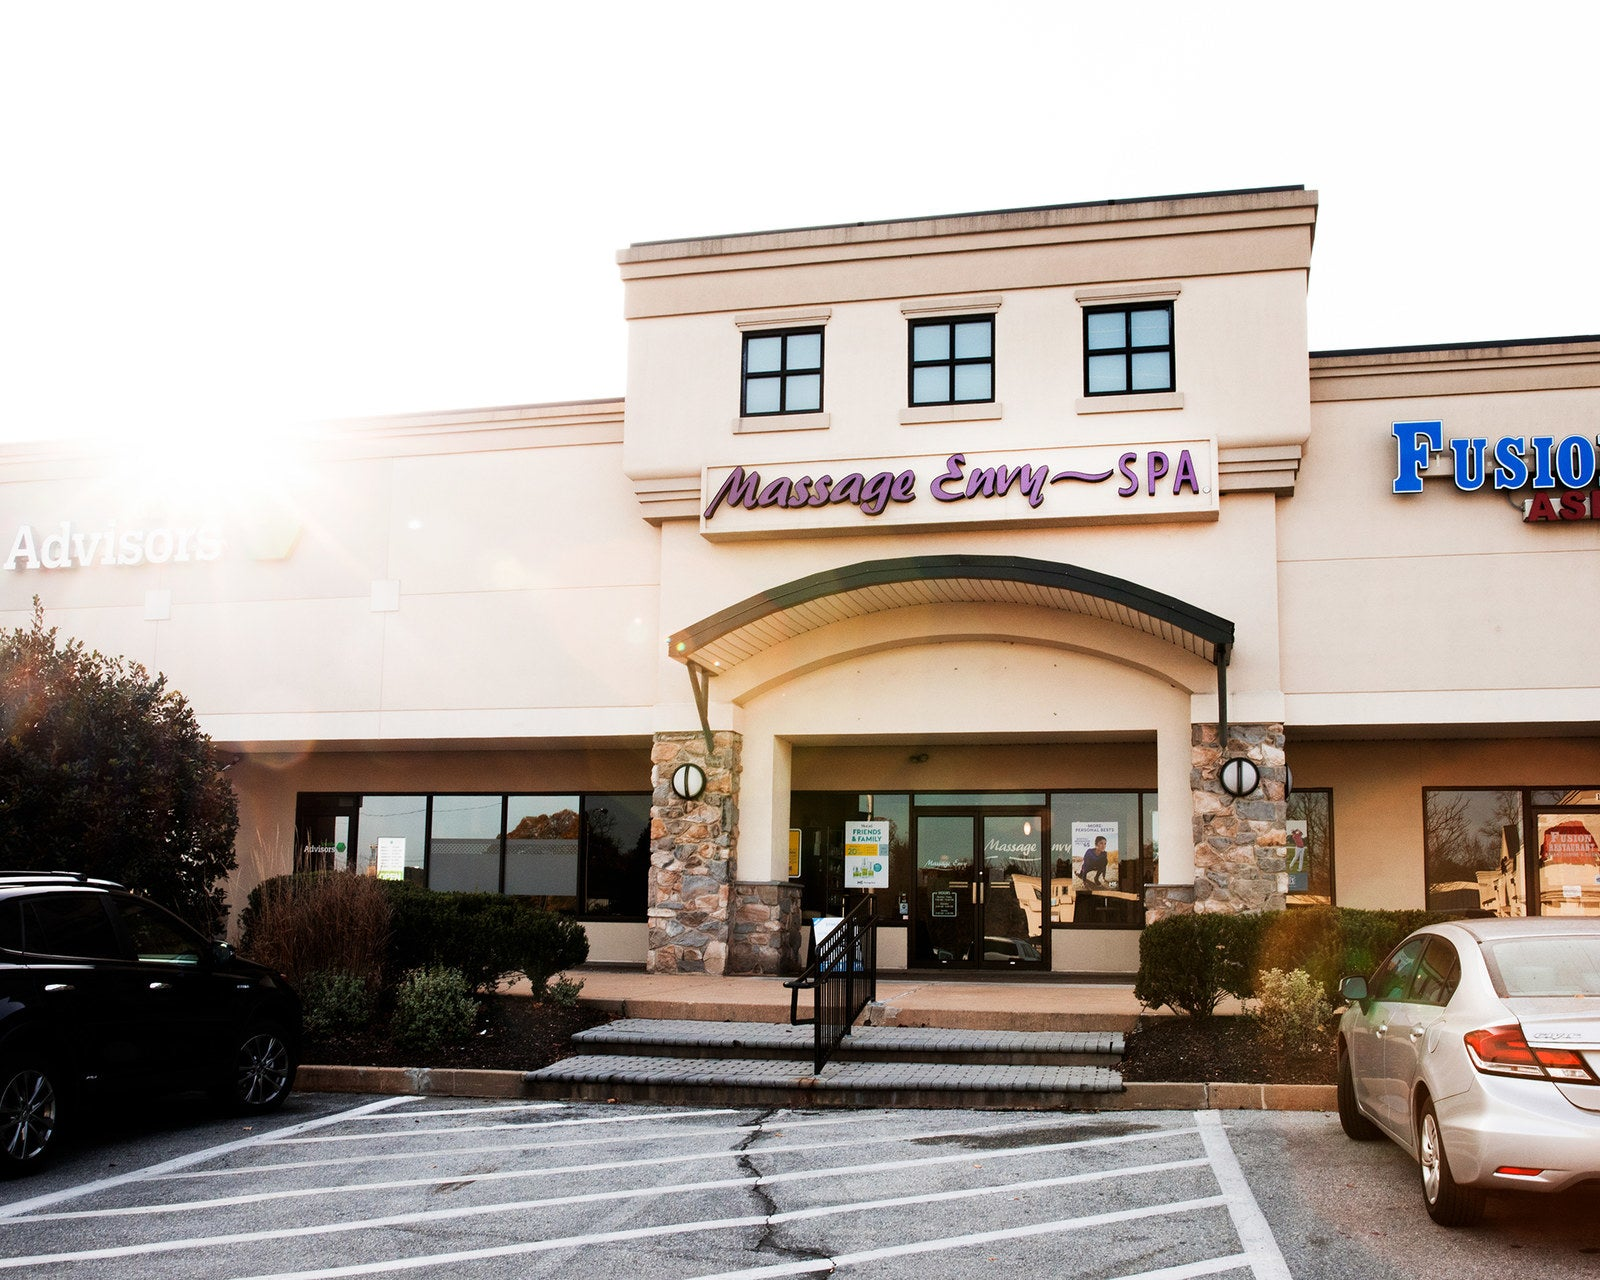 A Massage Envy location in Cherry Hill, New Jersey.